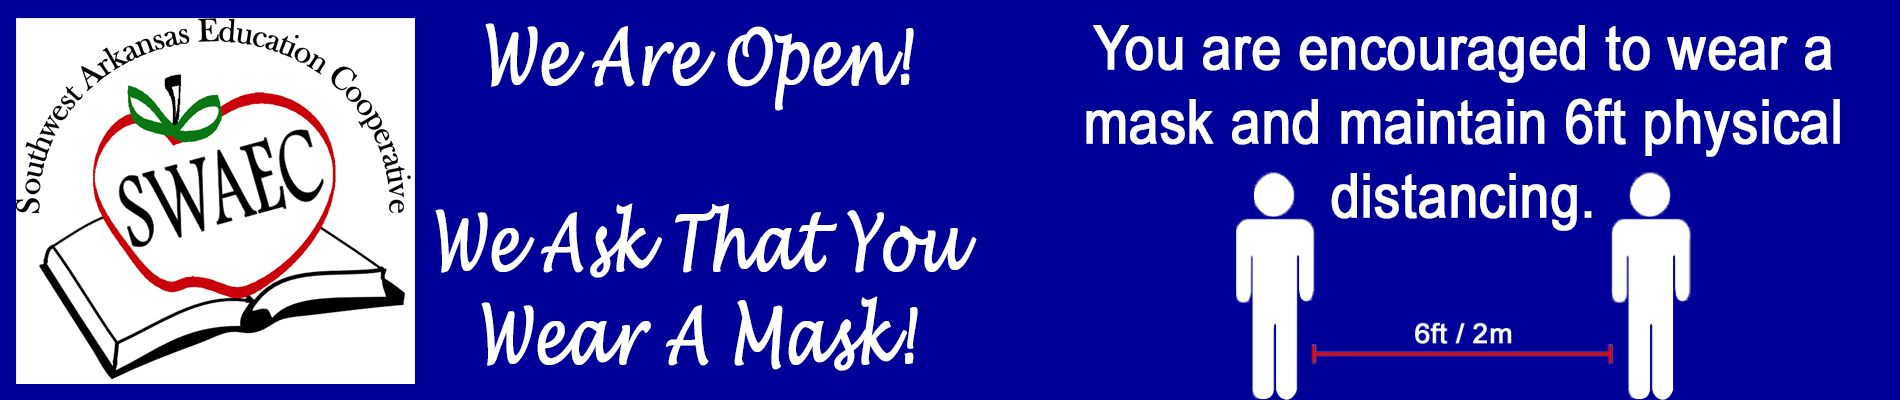 Encouraged to wear a mask, please maintain 6ft physical distance